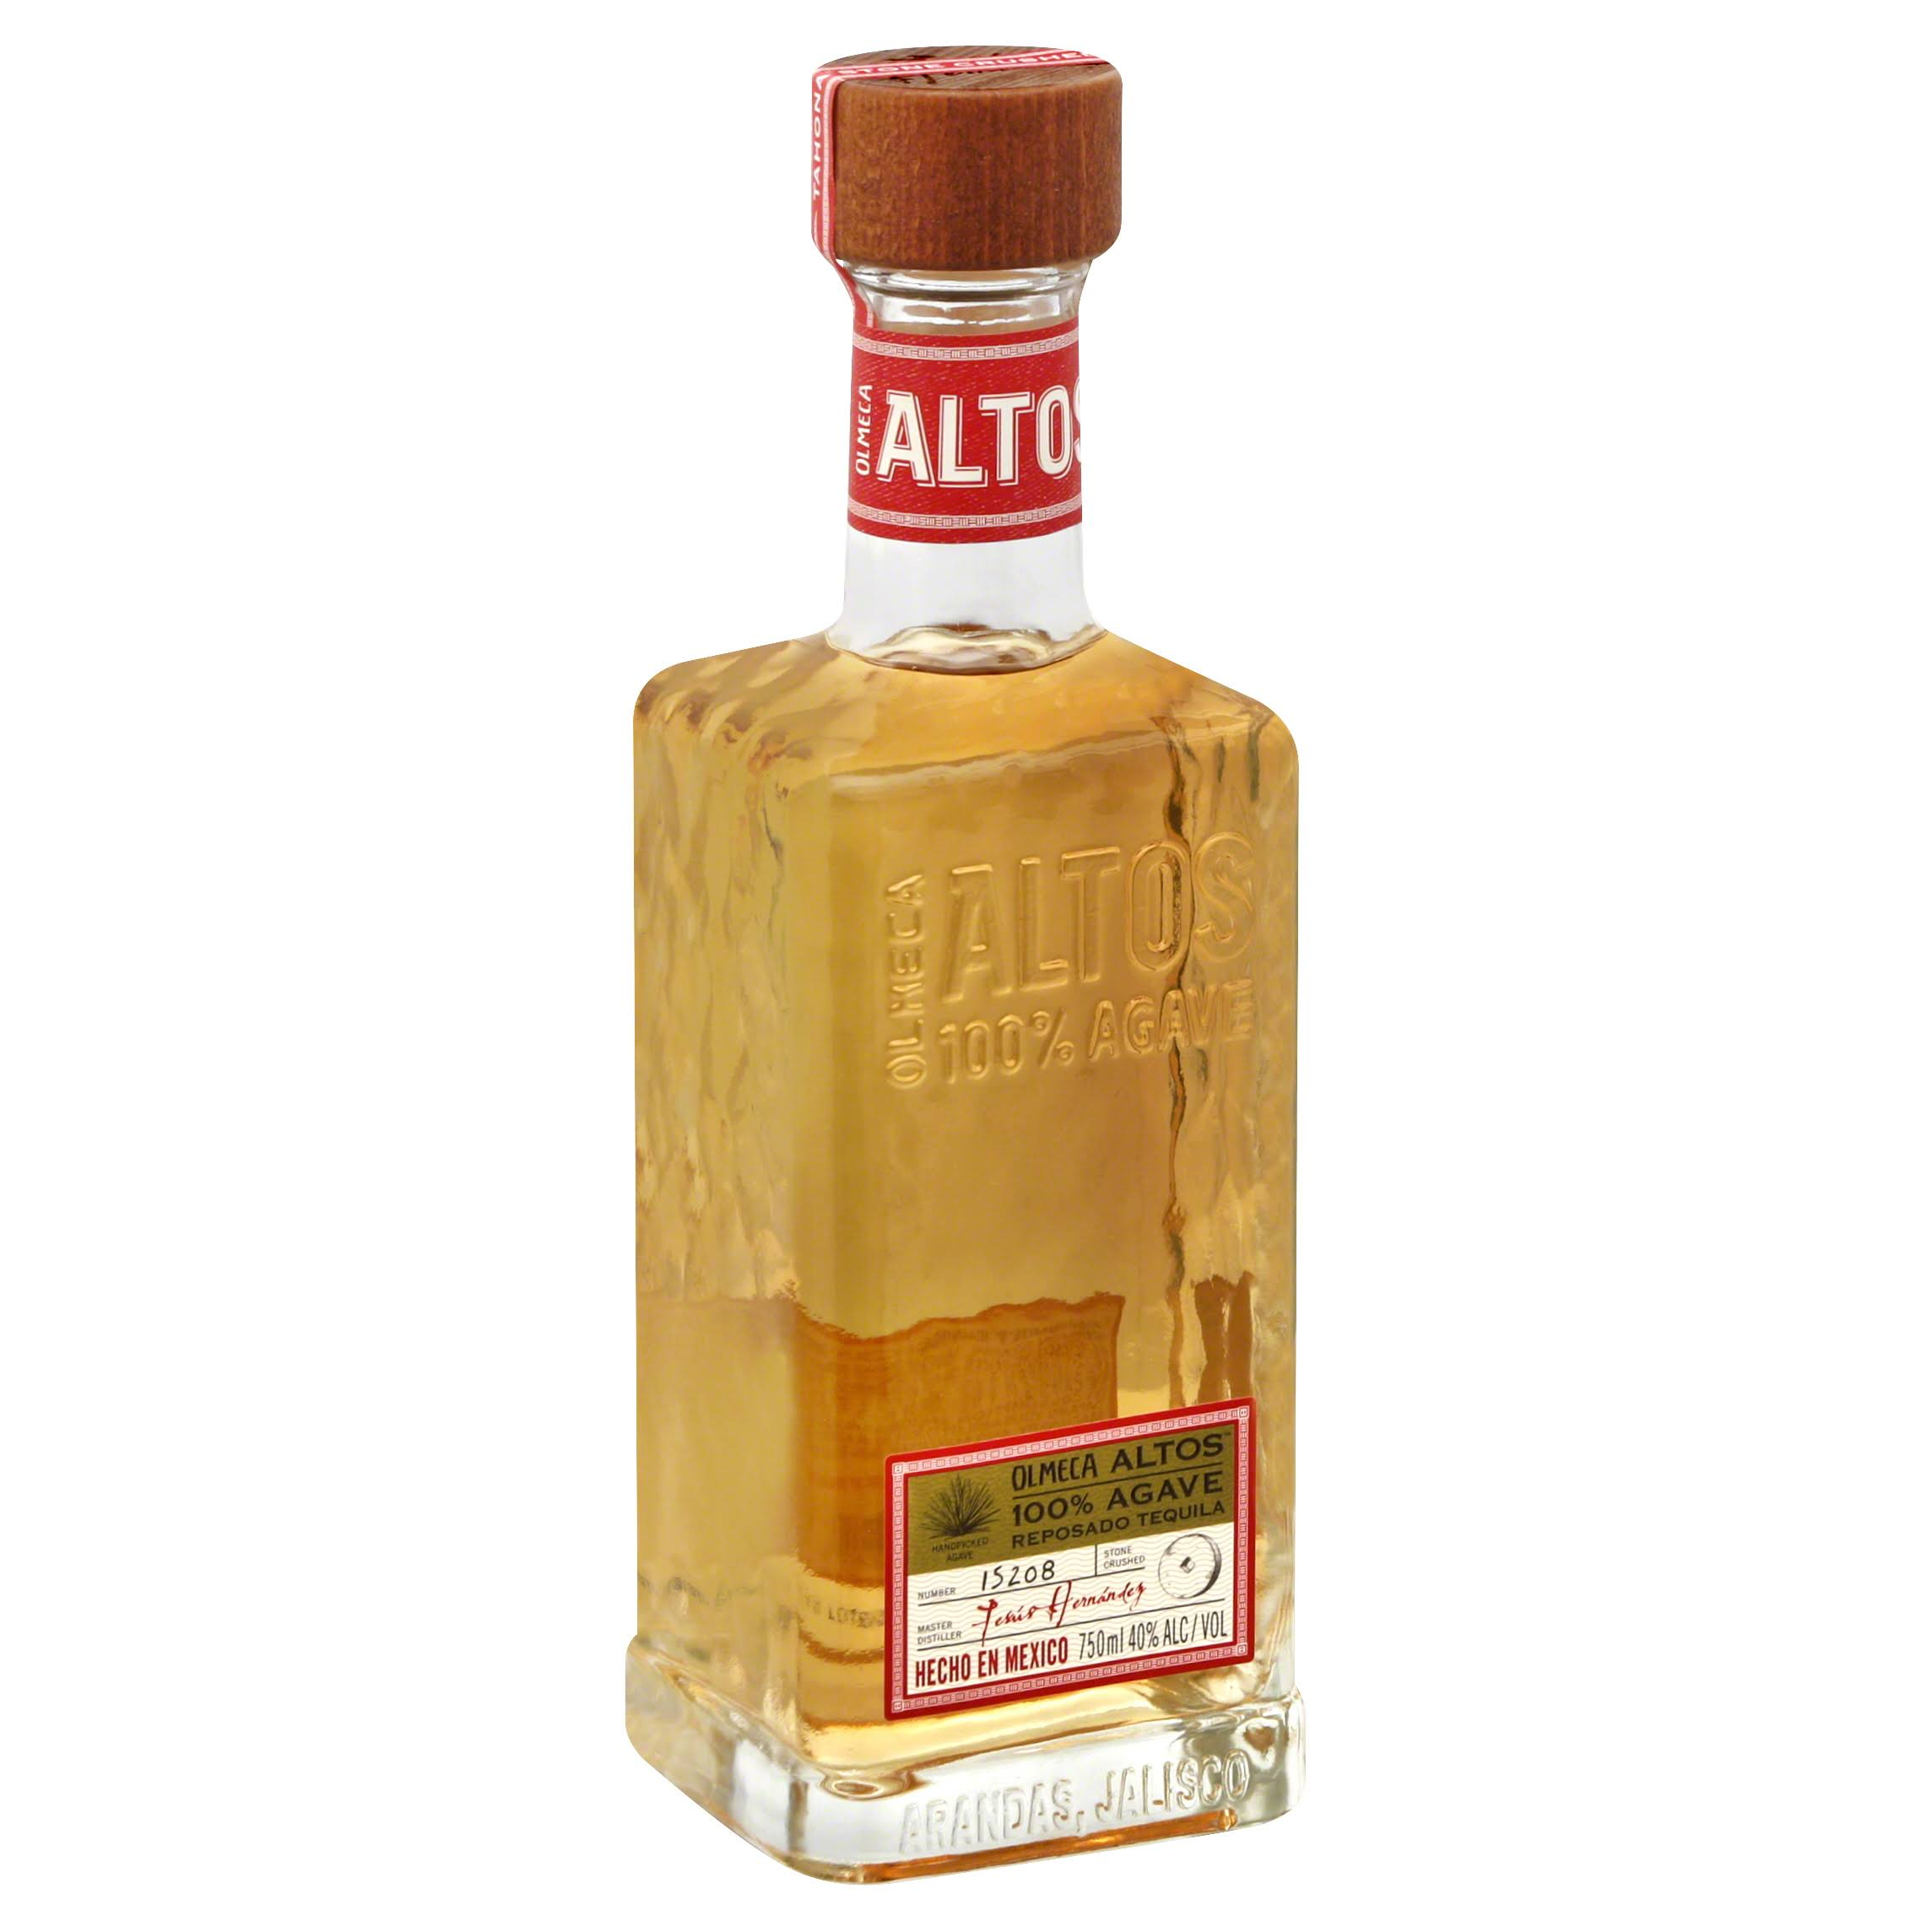 Olmeca Altos Tequila, 100% Agave - 750 ml